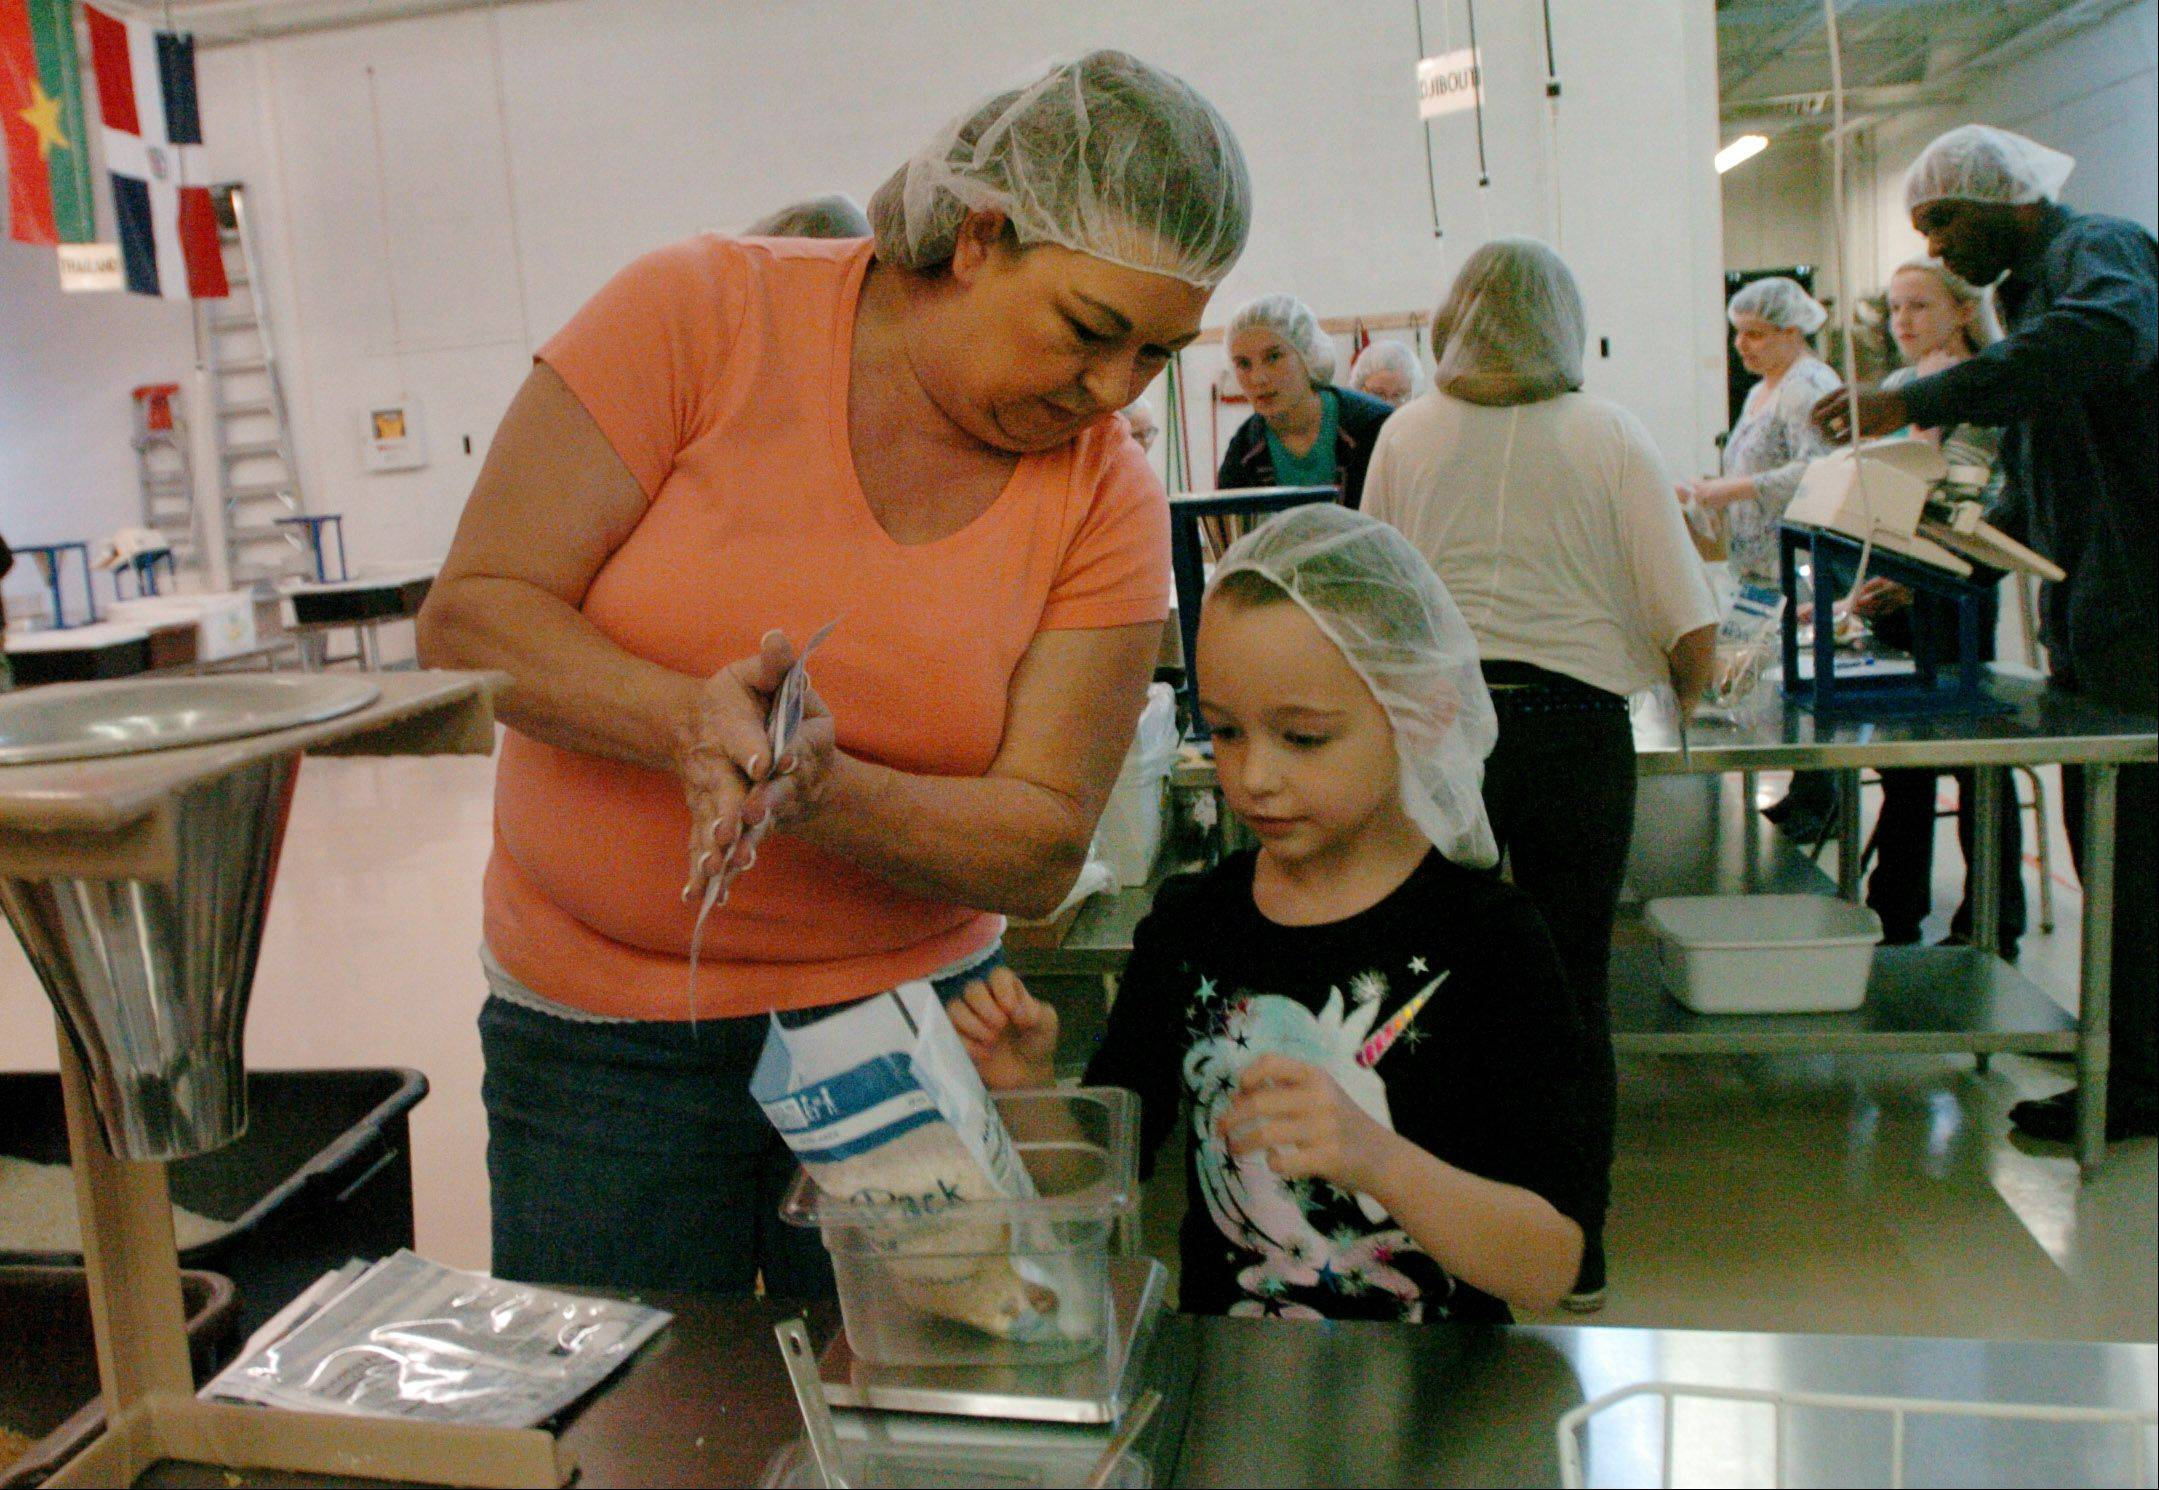 It's often a family affair at the various locations for Feed My Starving Children, which sends pre-packed meals to hungry children across the globe. Here at the Schaumburg location, home school mother Layna Owens of Elgin packs food with her daughter, Joah Owens, along with the Fox Valley Home Schoolers.